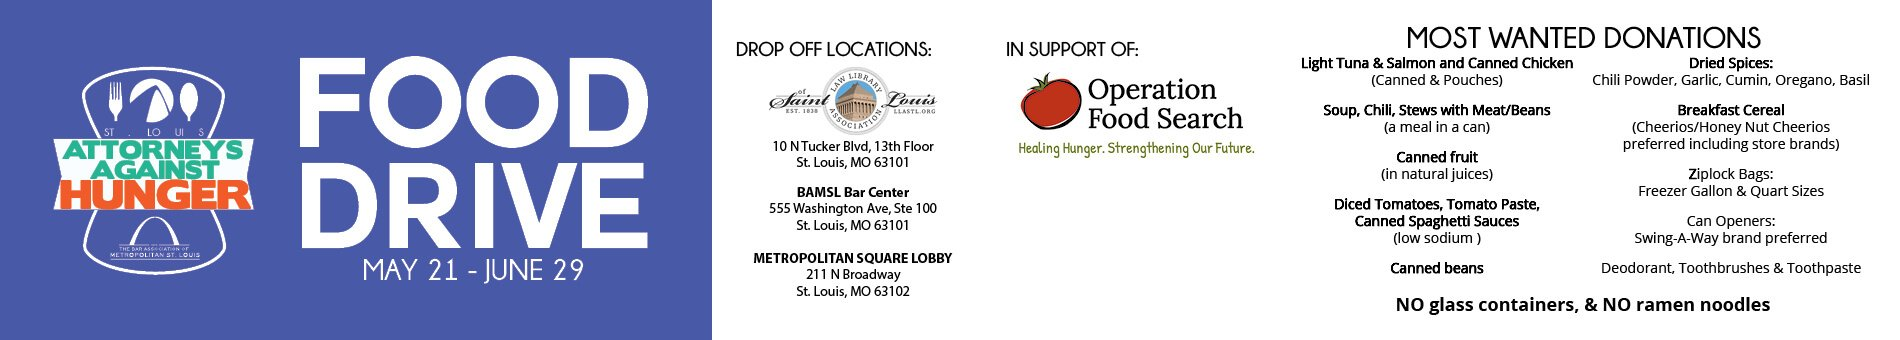 Join St. Louis Attorneys Against Hunger in its food drive to support Operation Food Search, May 21 through June 29